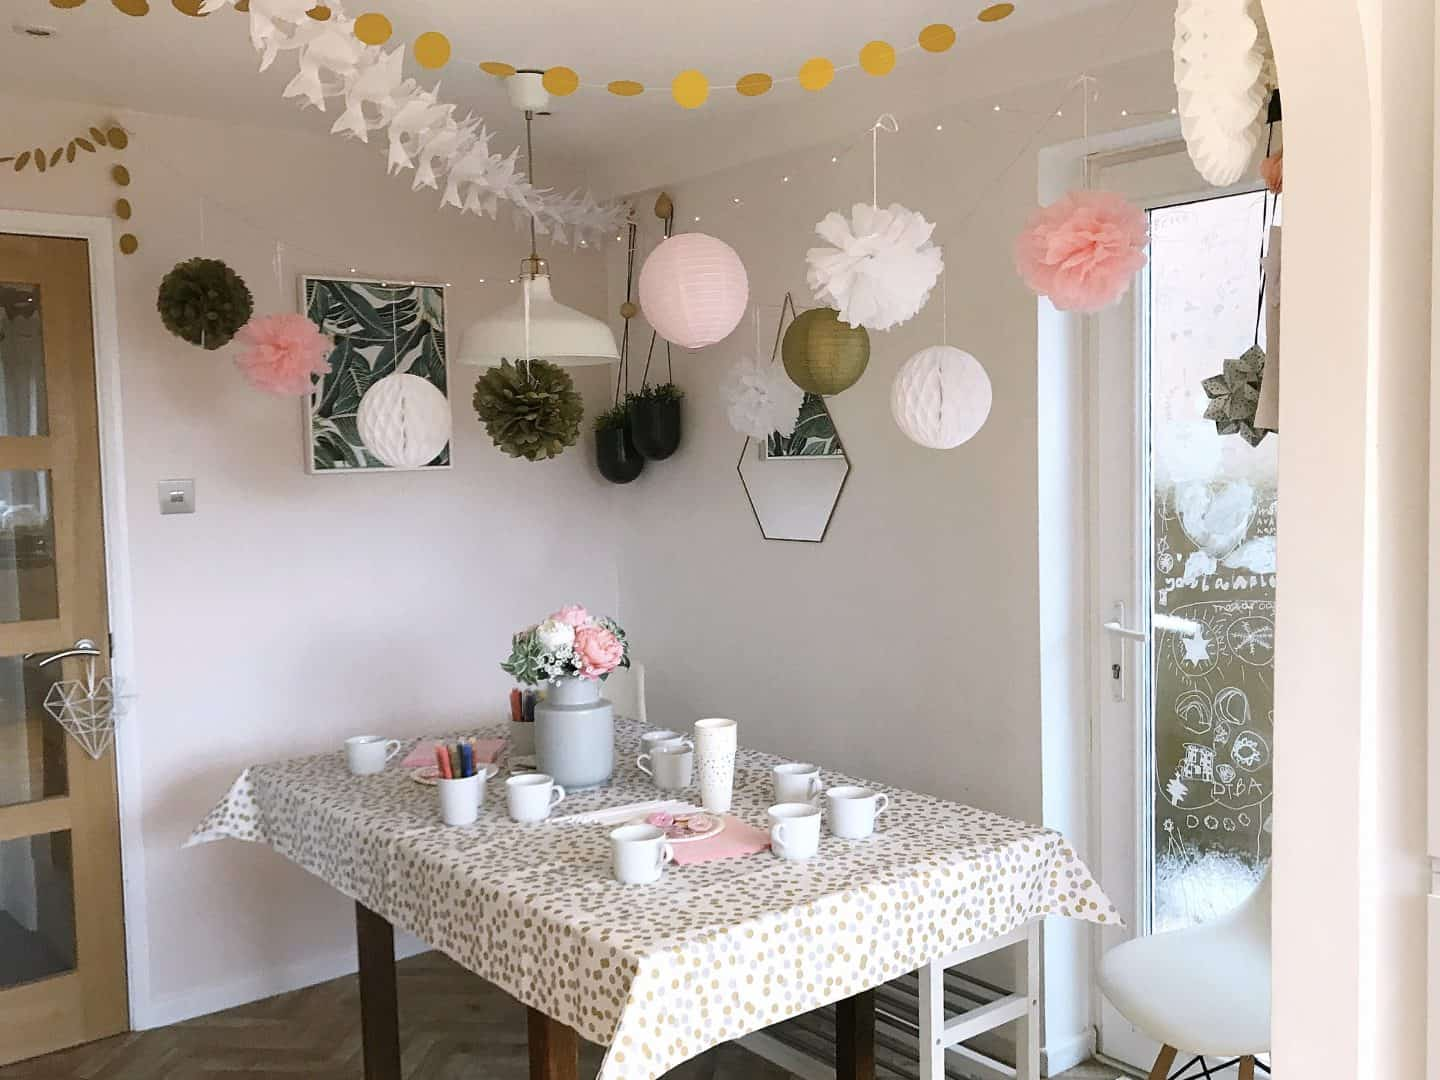 Dining room decorated for a mug decorating party